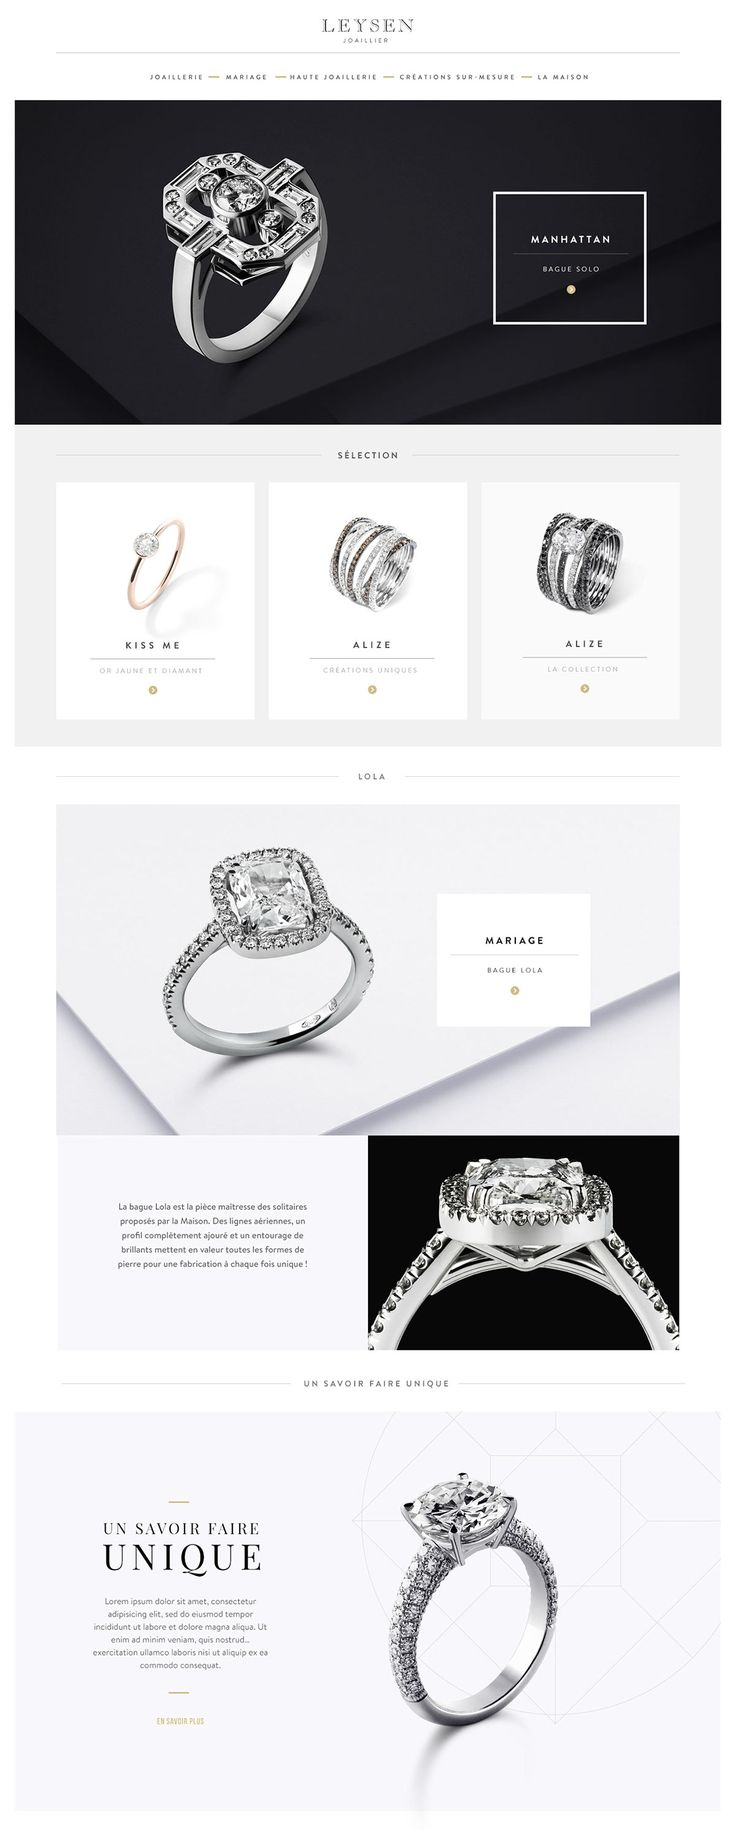 Jewellery maker Leysen brand new website